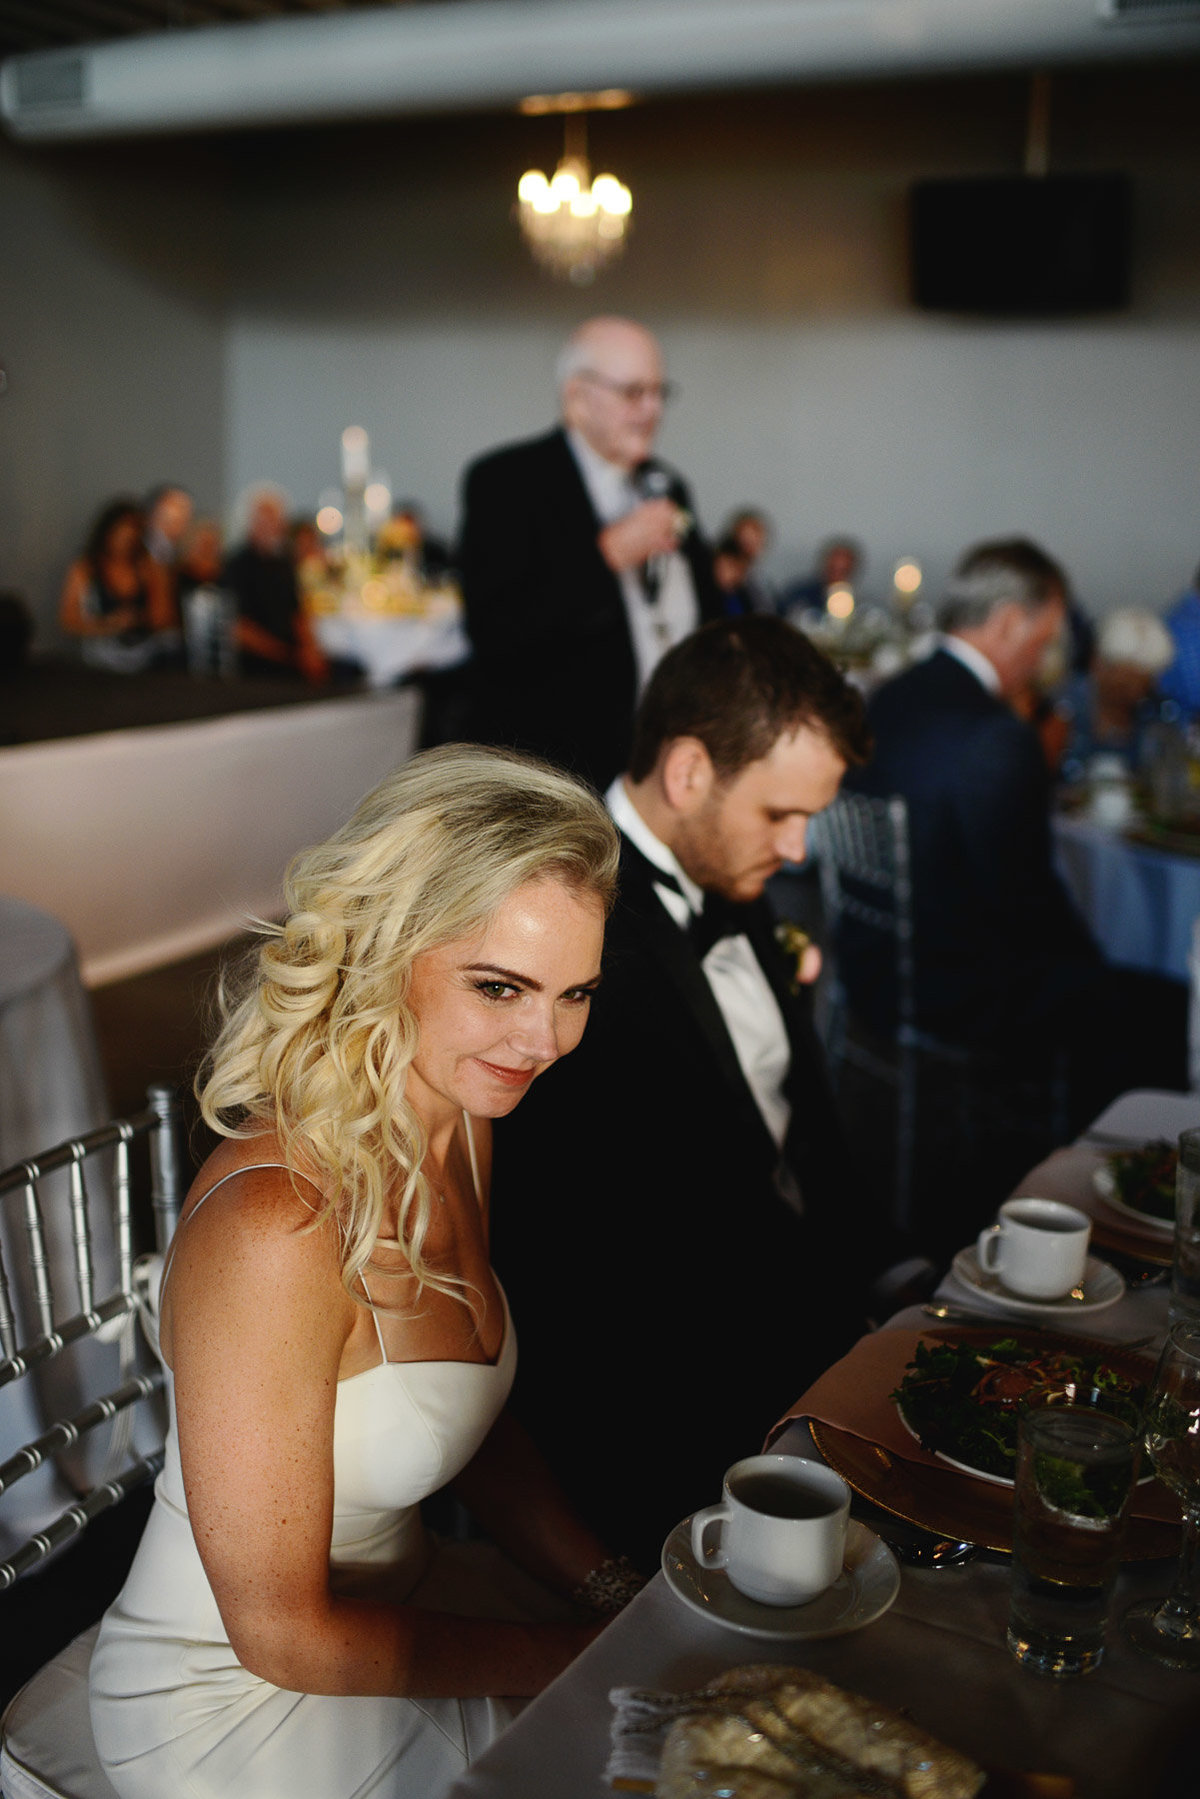 muse event center wedding photos minneapolis wedding photographer bryan newfield photography 56